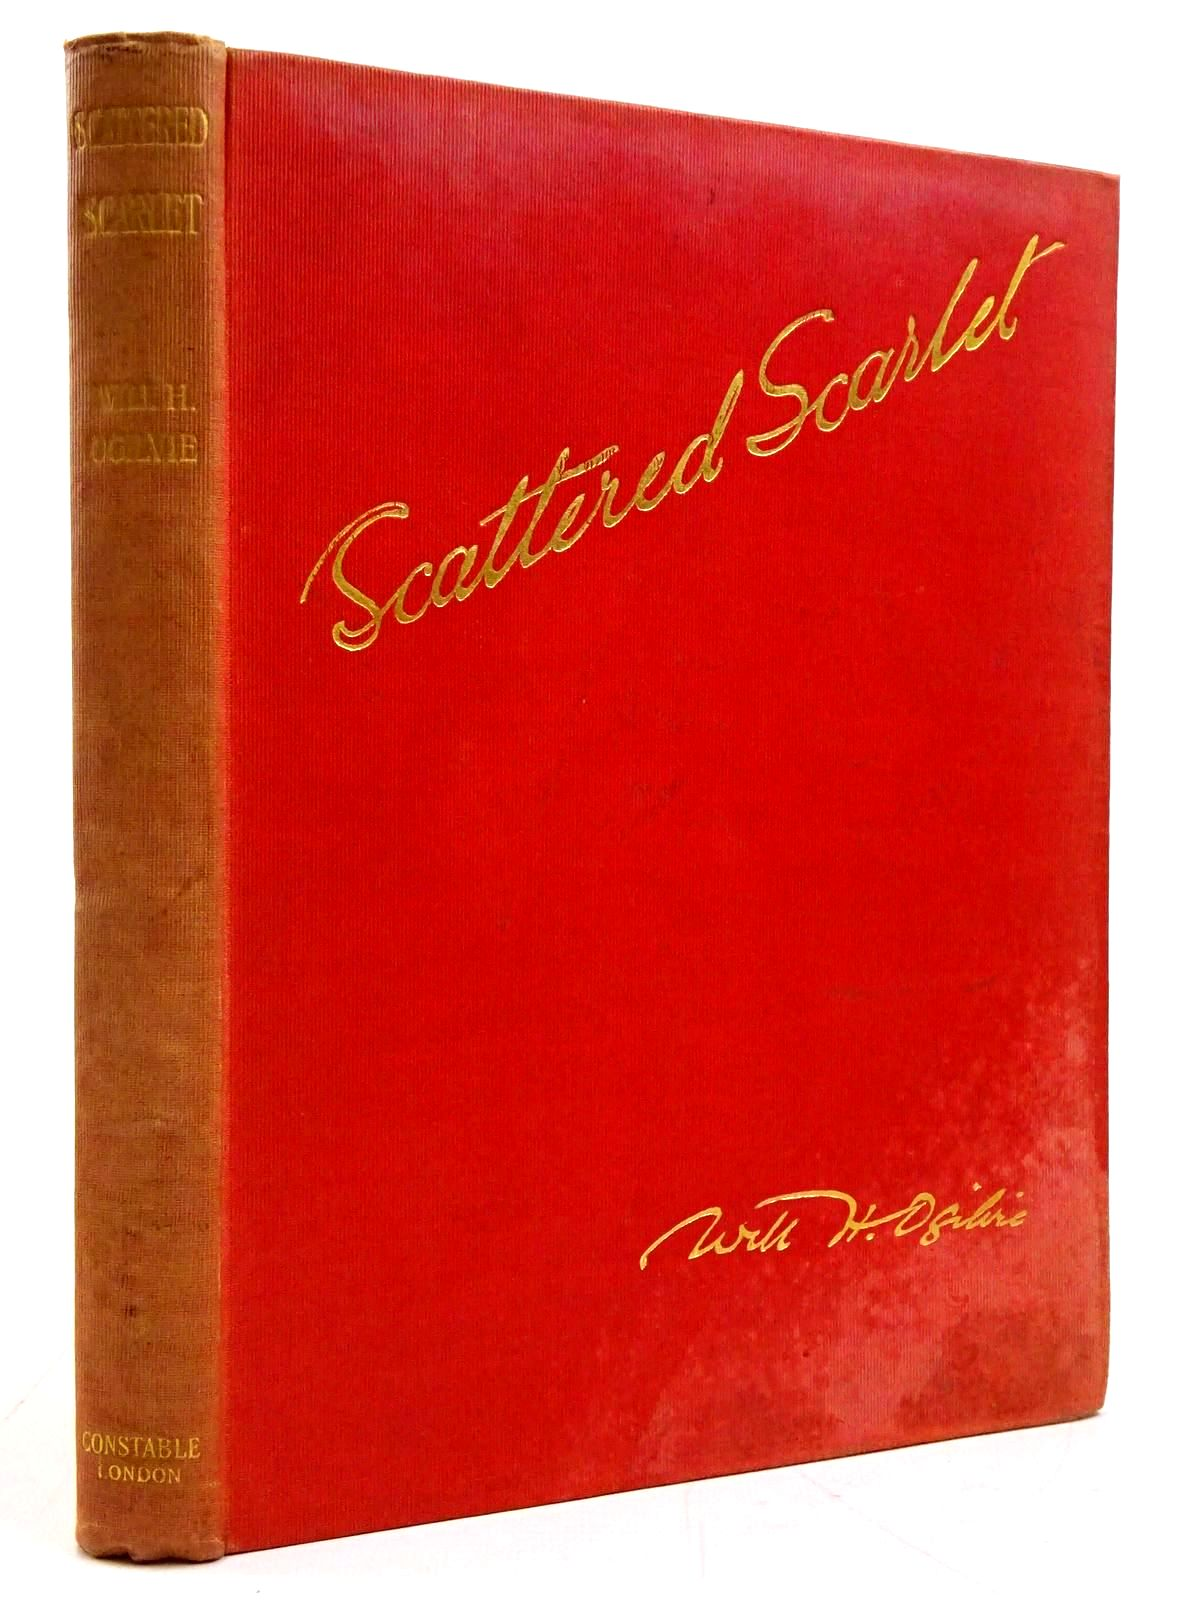 Photo of SCATTERED SCARLET written by Ogilvie, Will H. illustrated by Edwards, Lionel published by Constable & Co. Ltd. (STOCK CODE: 2131176)  for sale by Stella & Rose's Books